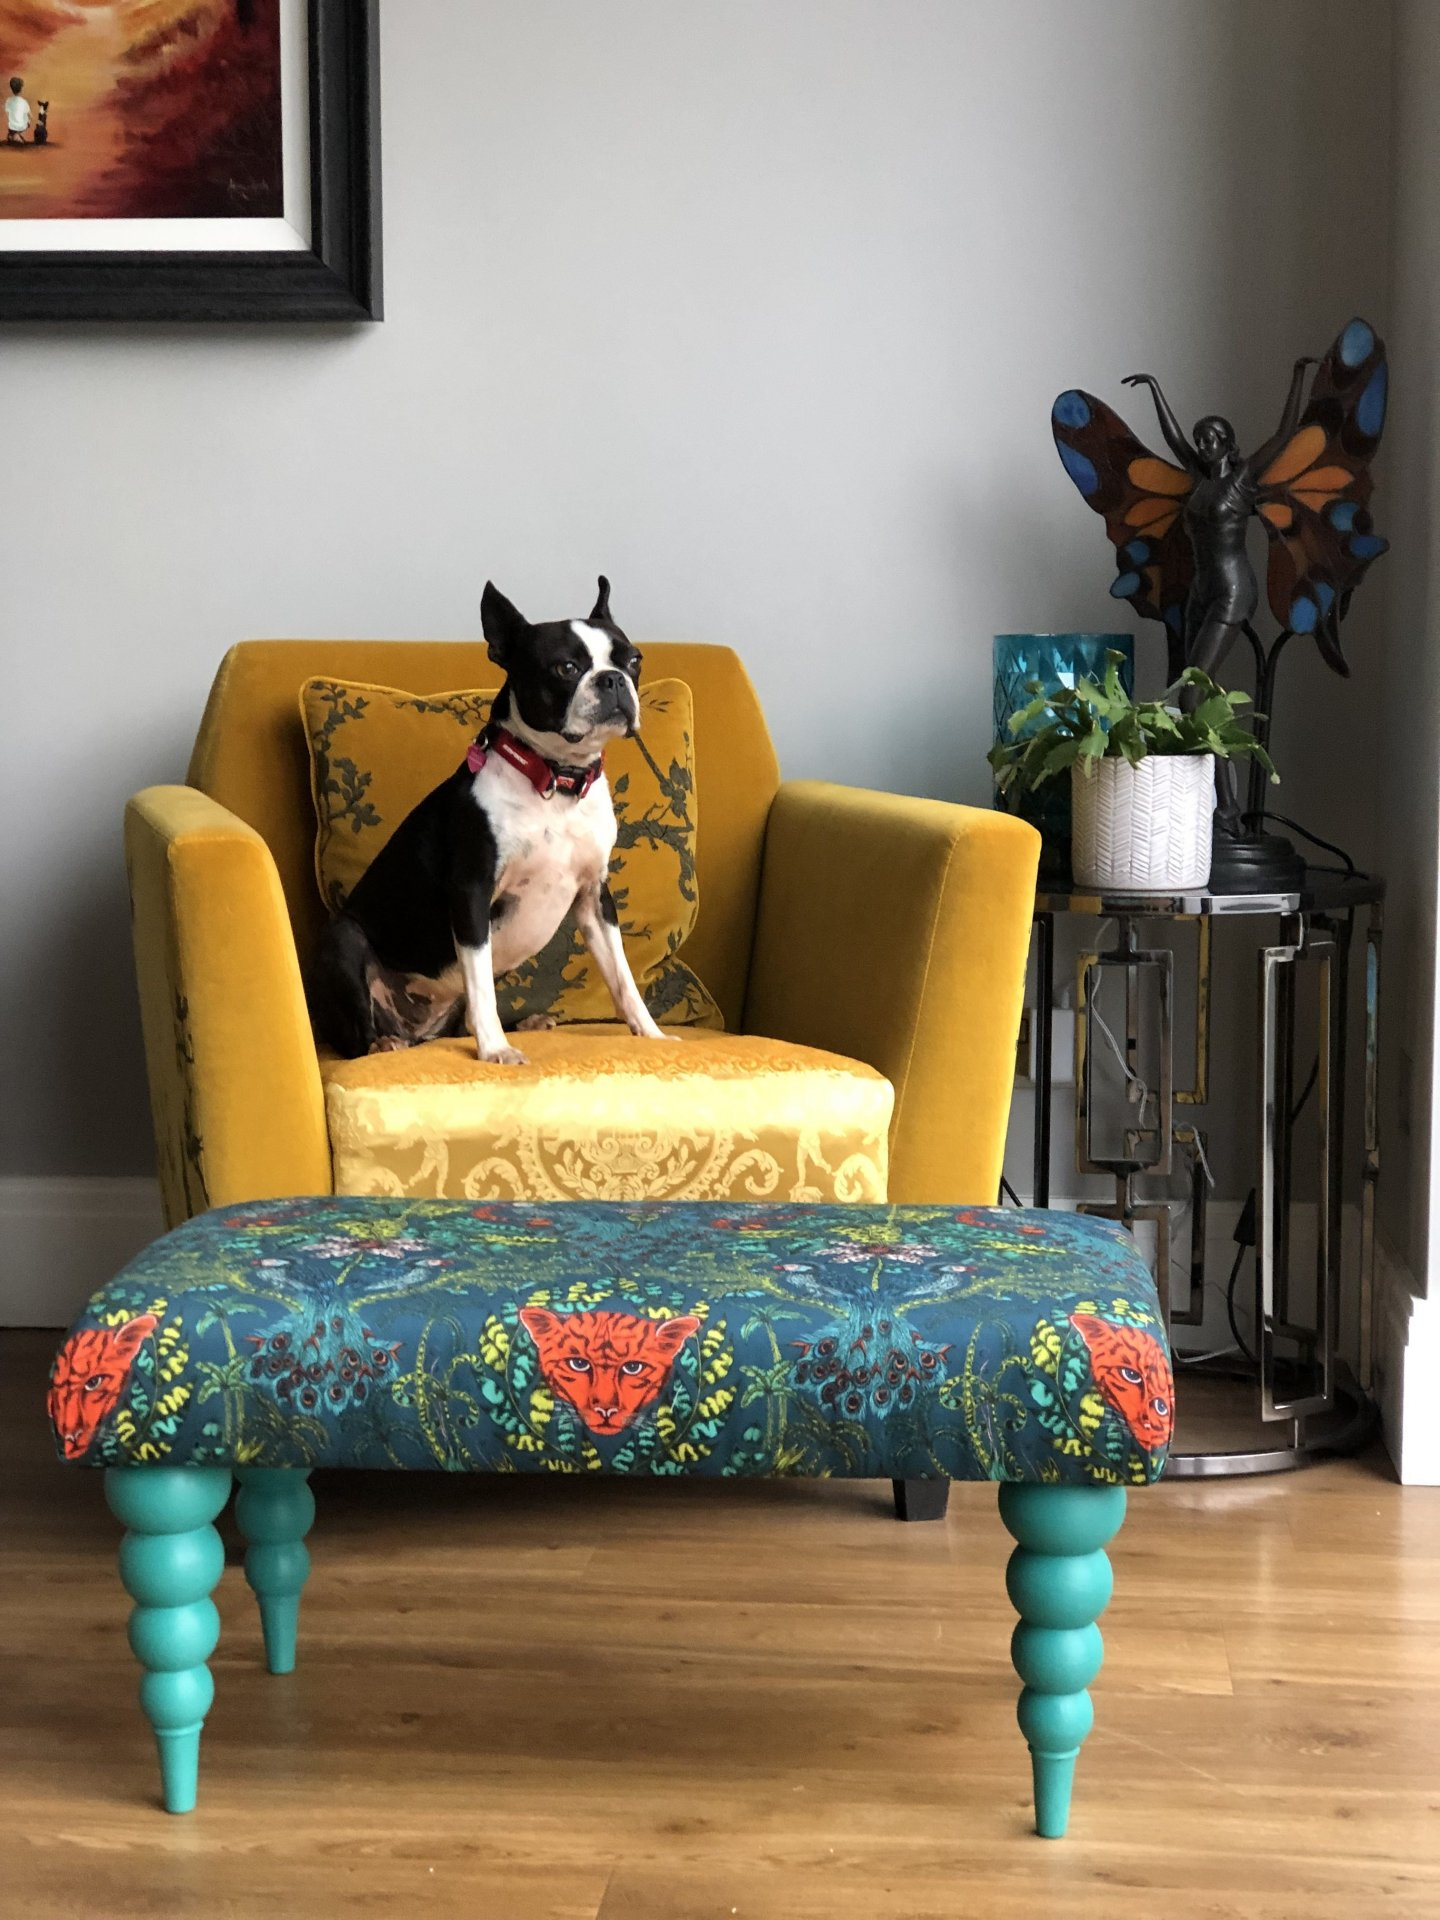 I recently tried making an upholstered footstool in Essex, I had been wanting to try some sort of upholstery course for a while. The footstool is bang on trend and chic for todays interior design and a perfect project to ease you in to upholstery and interior design